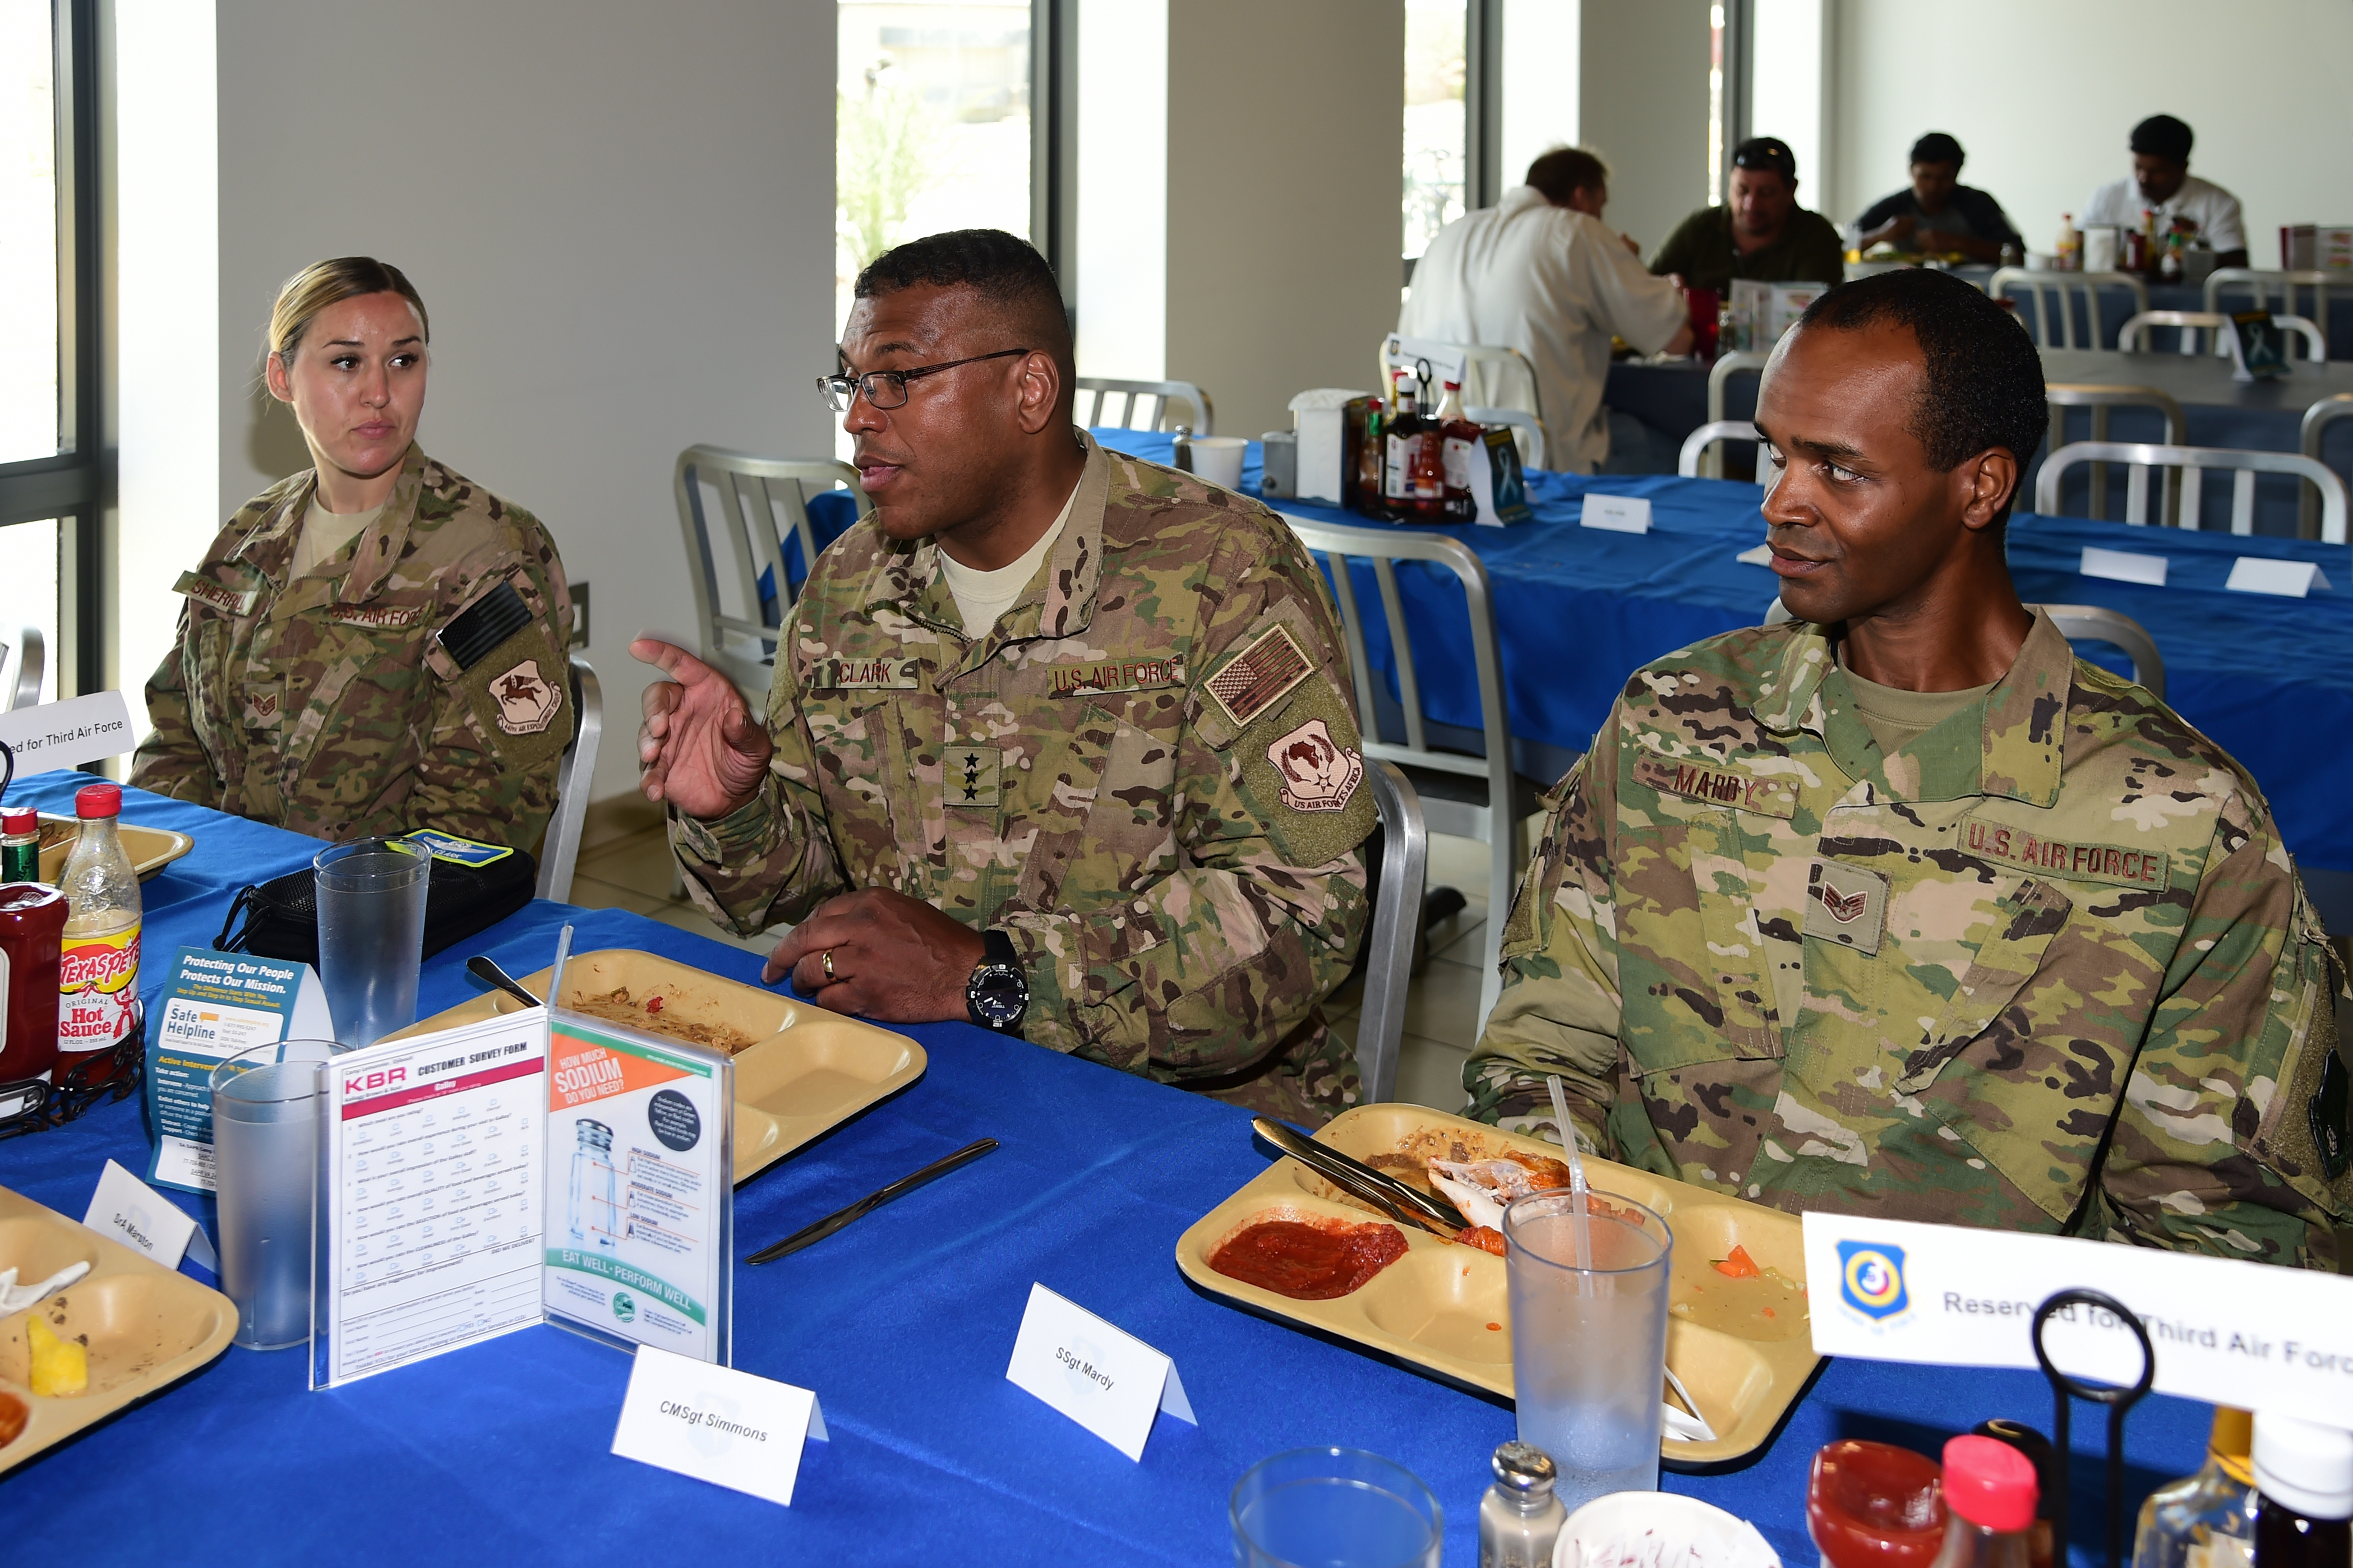 U.S. Air Force Staff Sgt. Jennifer Sherrill with the 870th Air Expeditionary Squadron, and Staff Sgt. Brian Mardy with the 81st Expeditionary Rescue Squadron join Lt. Gen. Richard Clark, commander of the 3rd Air Force and 17th Expeditionary Air Force for lunch at Camp Lemonnier, Djibouti April 12, 2017. Clark was accompanied by Chief Master Sgt. Phillip Easton, U.S. Air Forces Europe and U.S. Air Forces Africa command chief, on a visit with deployed Airmen, to gain a better understanding of the Air Force mission in East Africa, and express their appreciation to the many U.S. Airmen deployed throughout the region. (U.S. Air National Guard photo by Master Sgt. Paul Gorman)